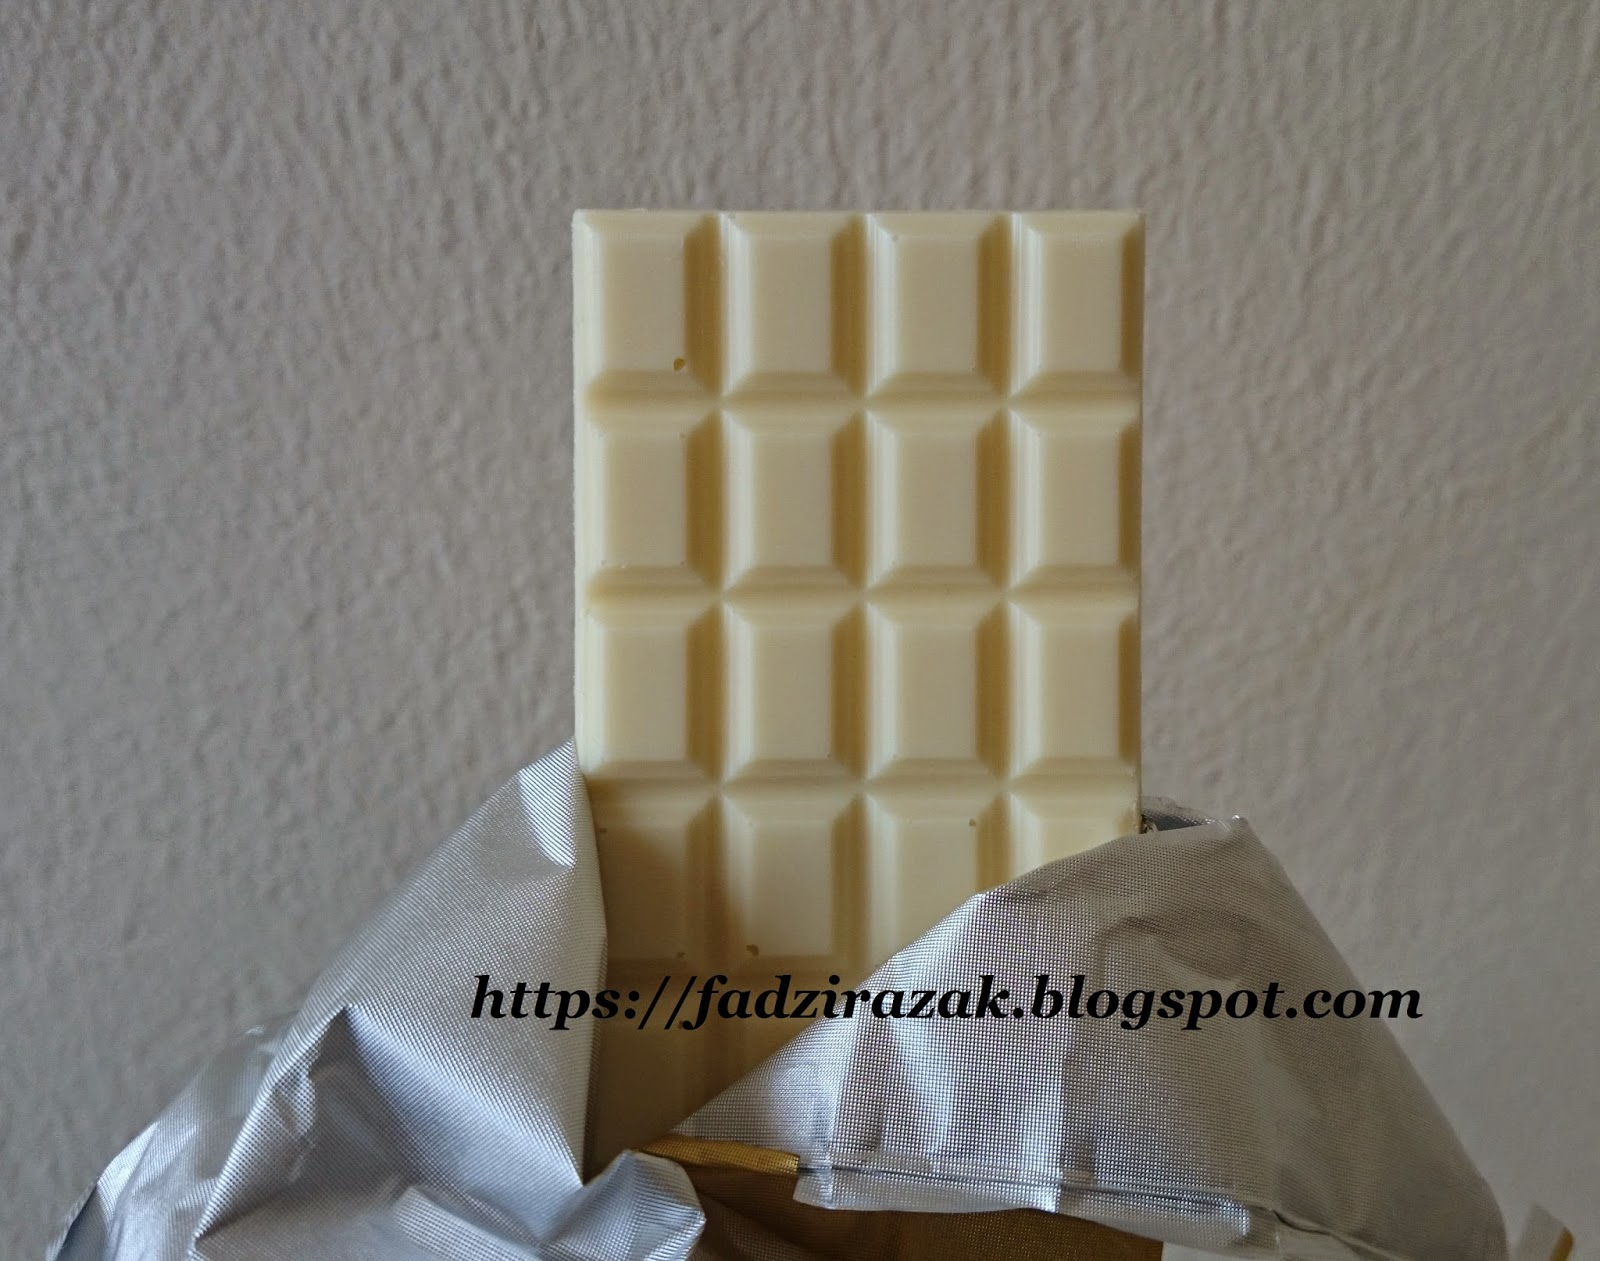 White Chocolate Maison Dlights